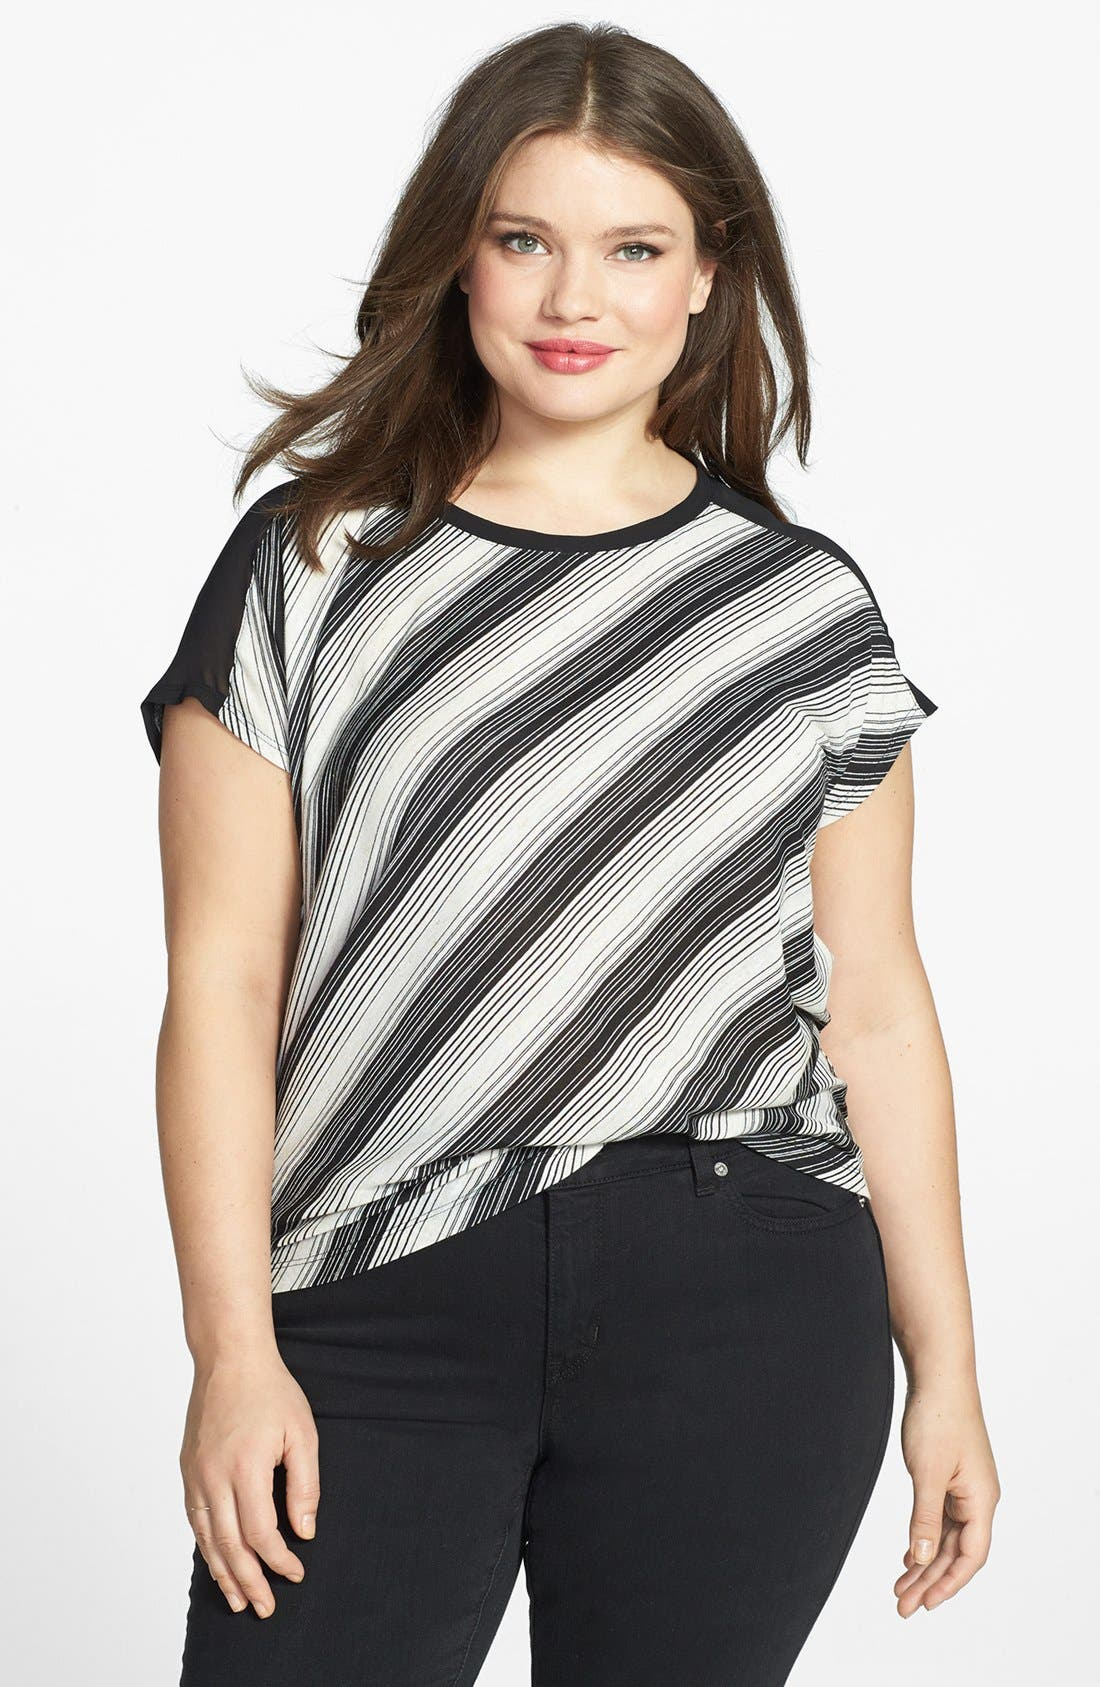 Alternate Image 1 Selected - Two by Vince Camuto Mixed Media Top (Plus Size)